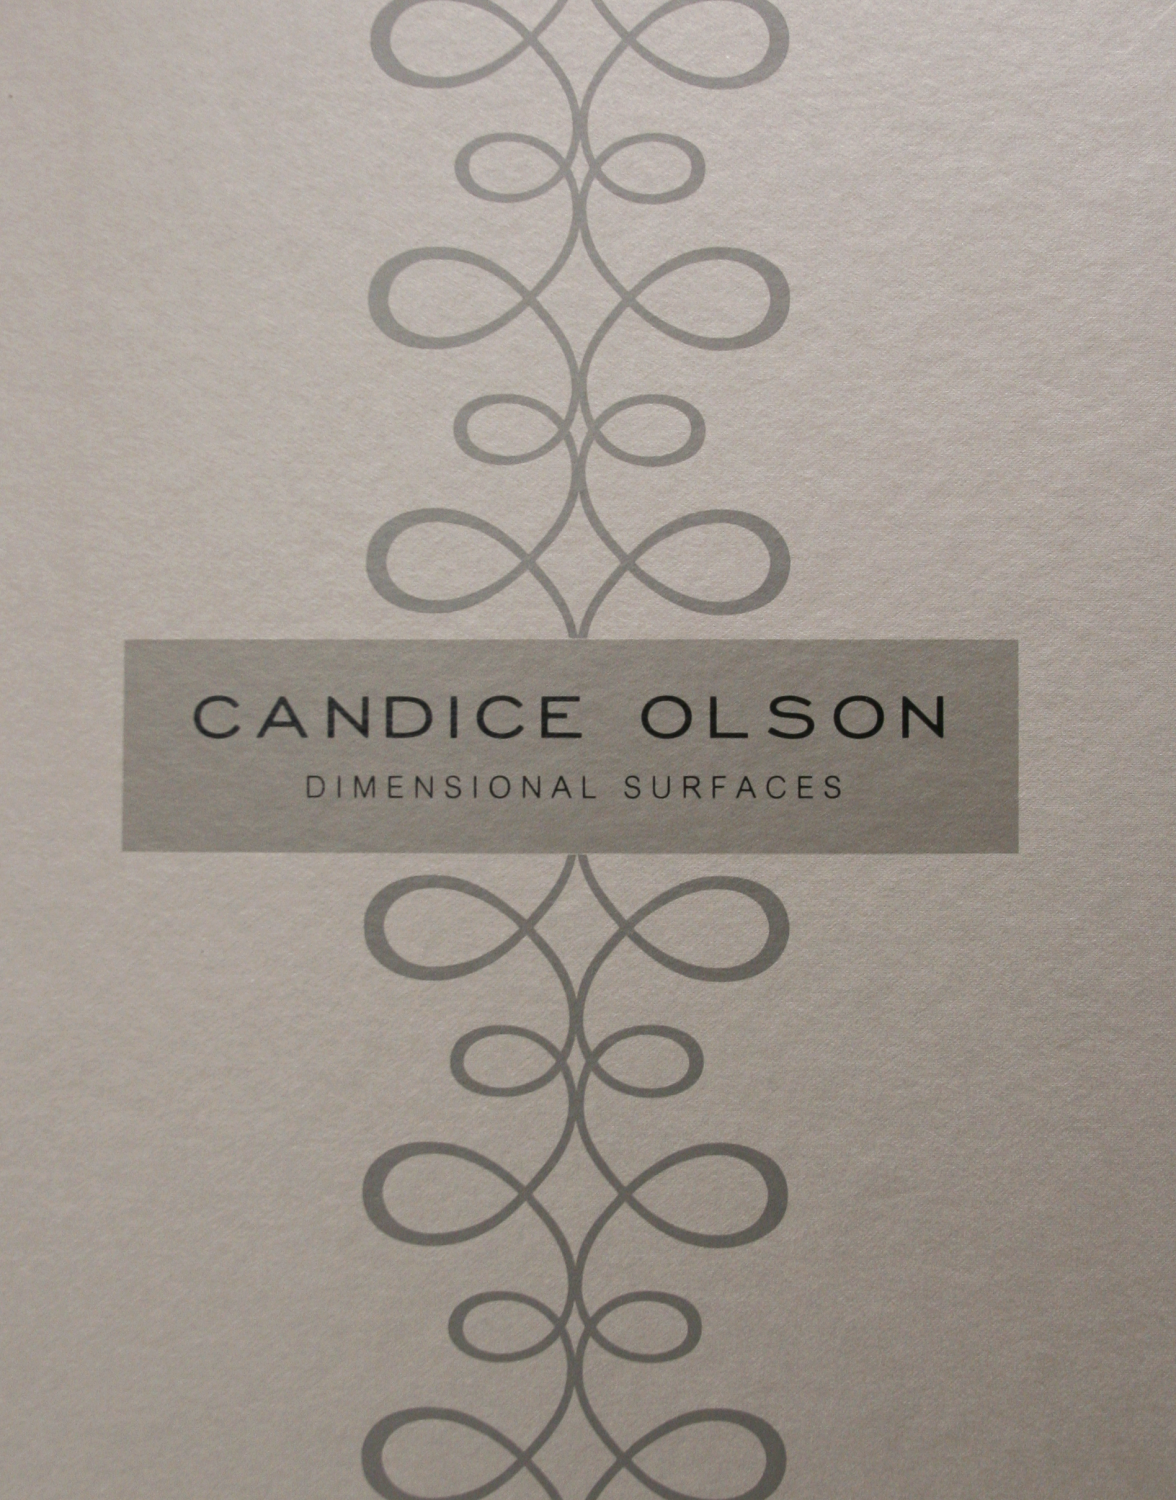 Candice Olson Dimensional Surfaces Wallpaper